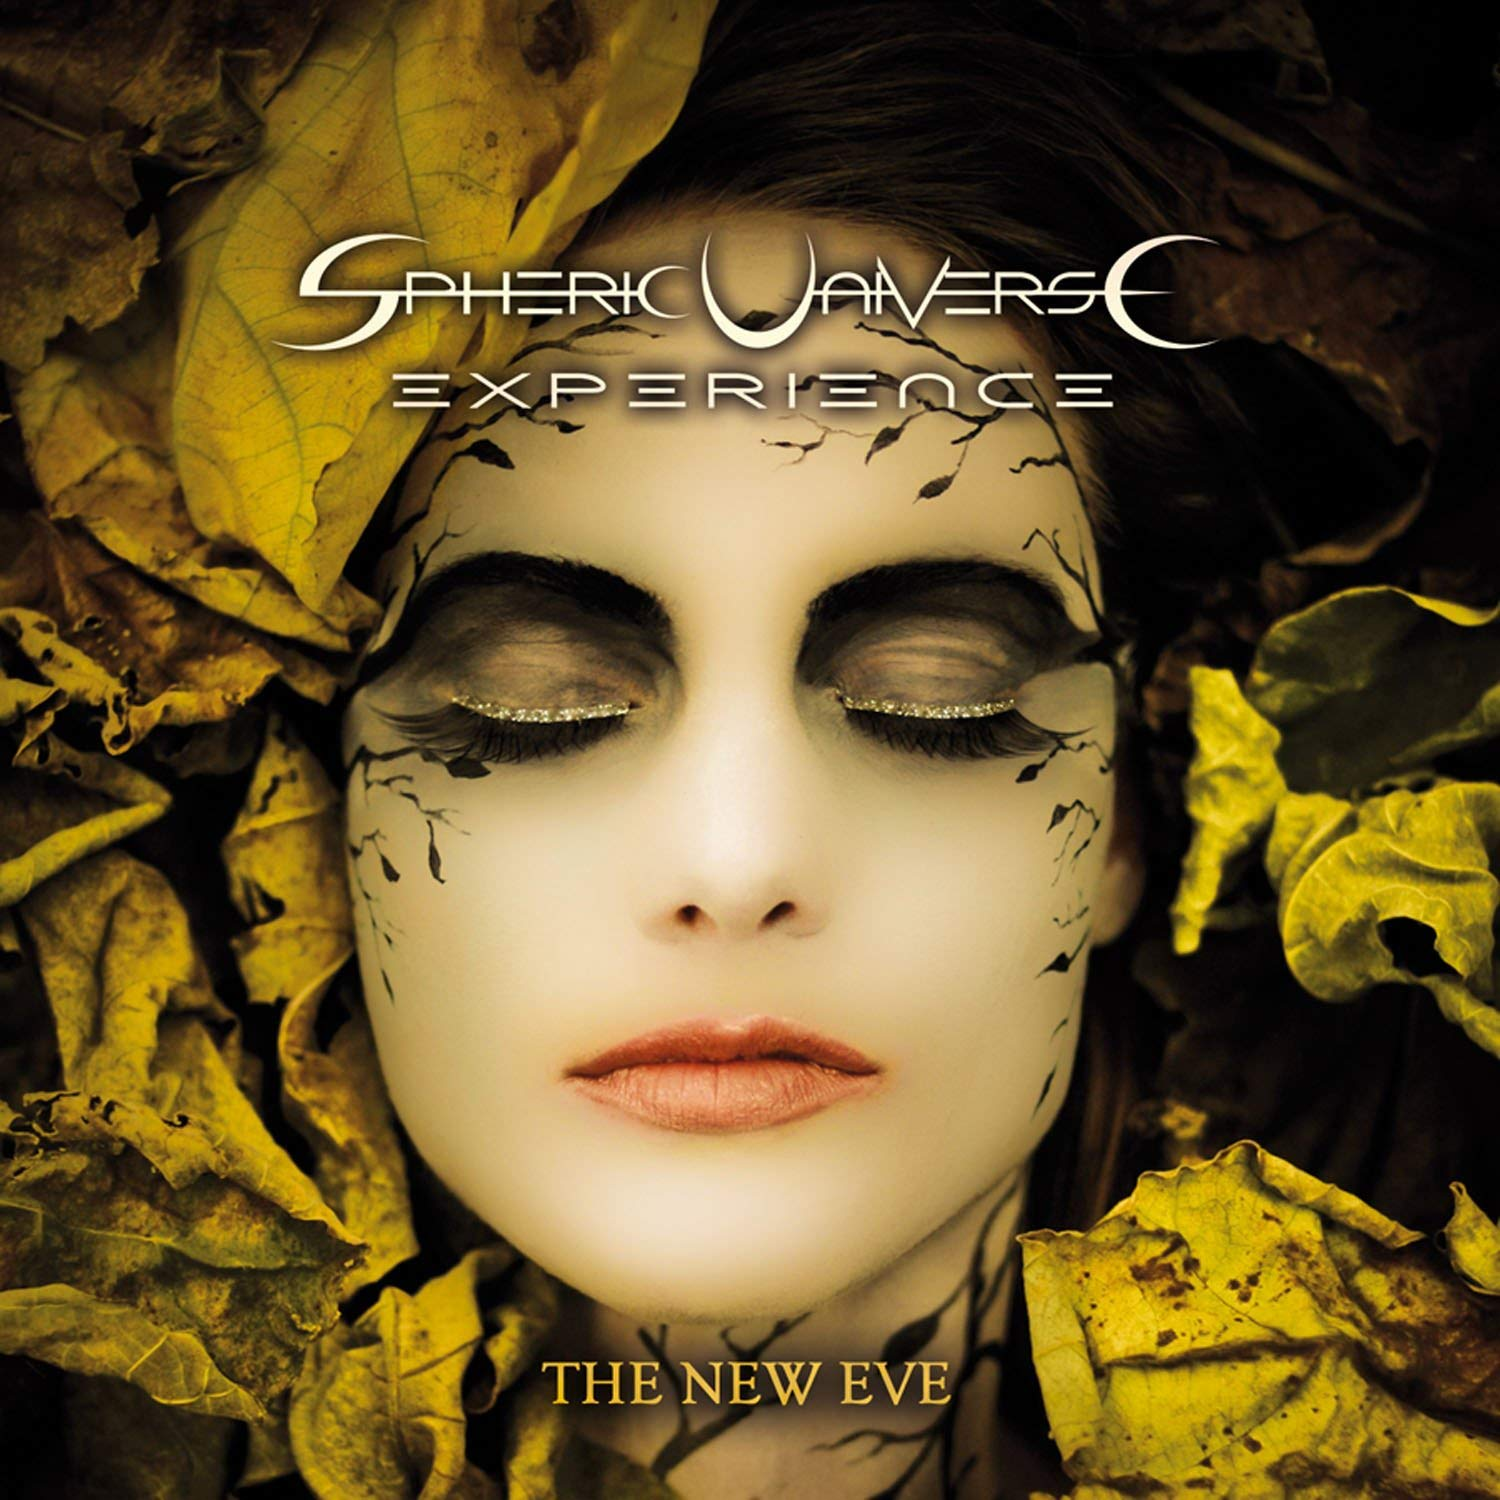 Spheric Universe Experience: The New Eve